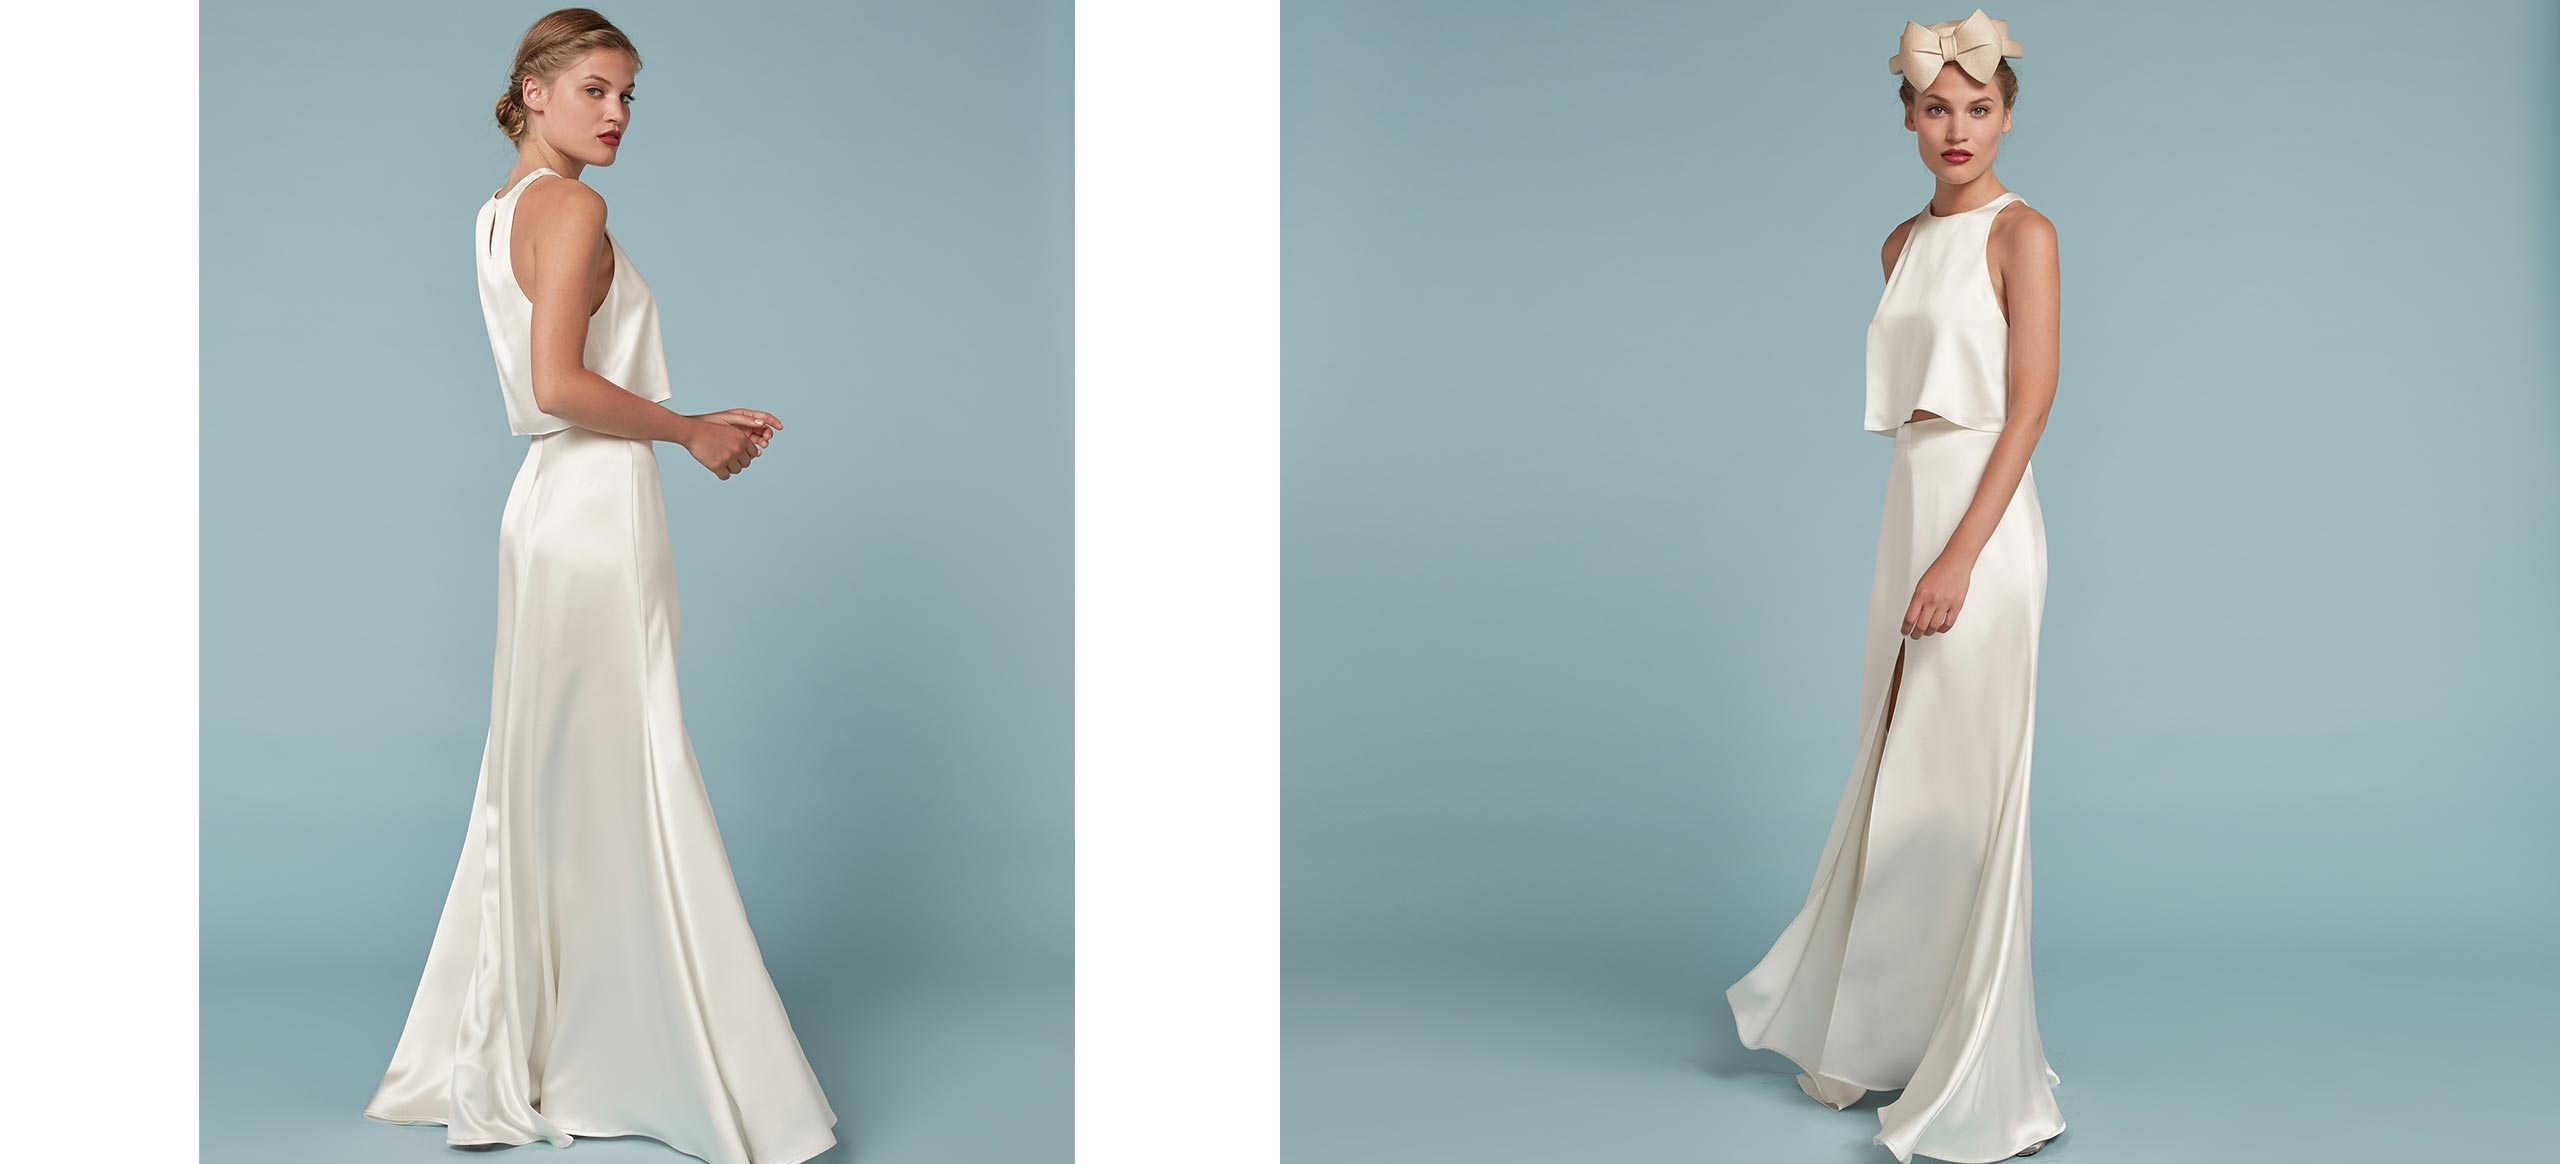 Reformation; The Beautiful & Sustainable Bridal Brand - West Coast ...